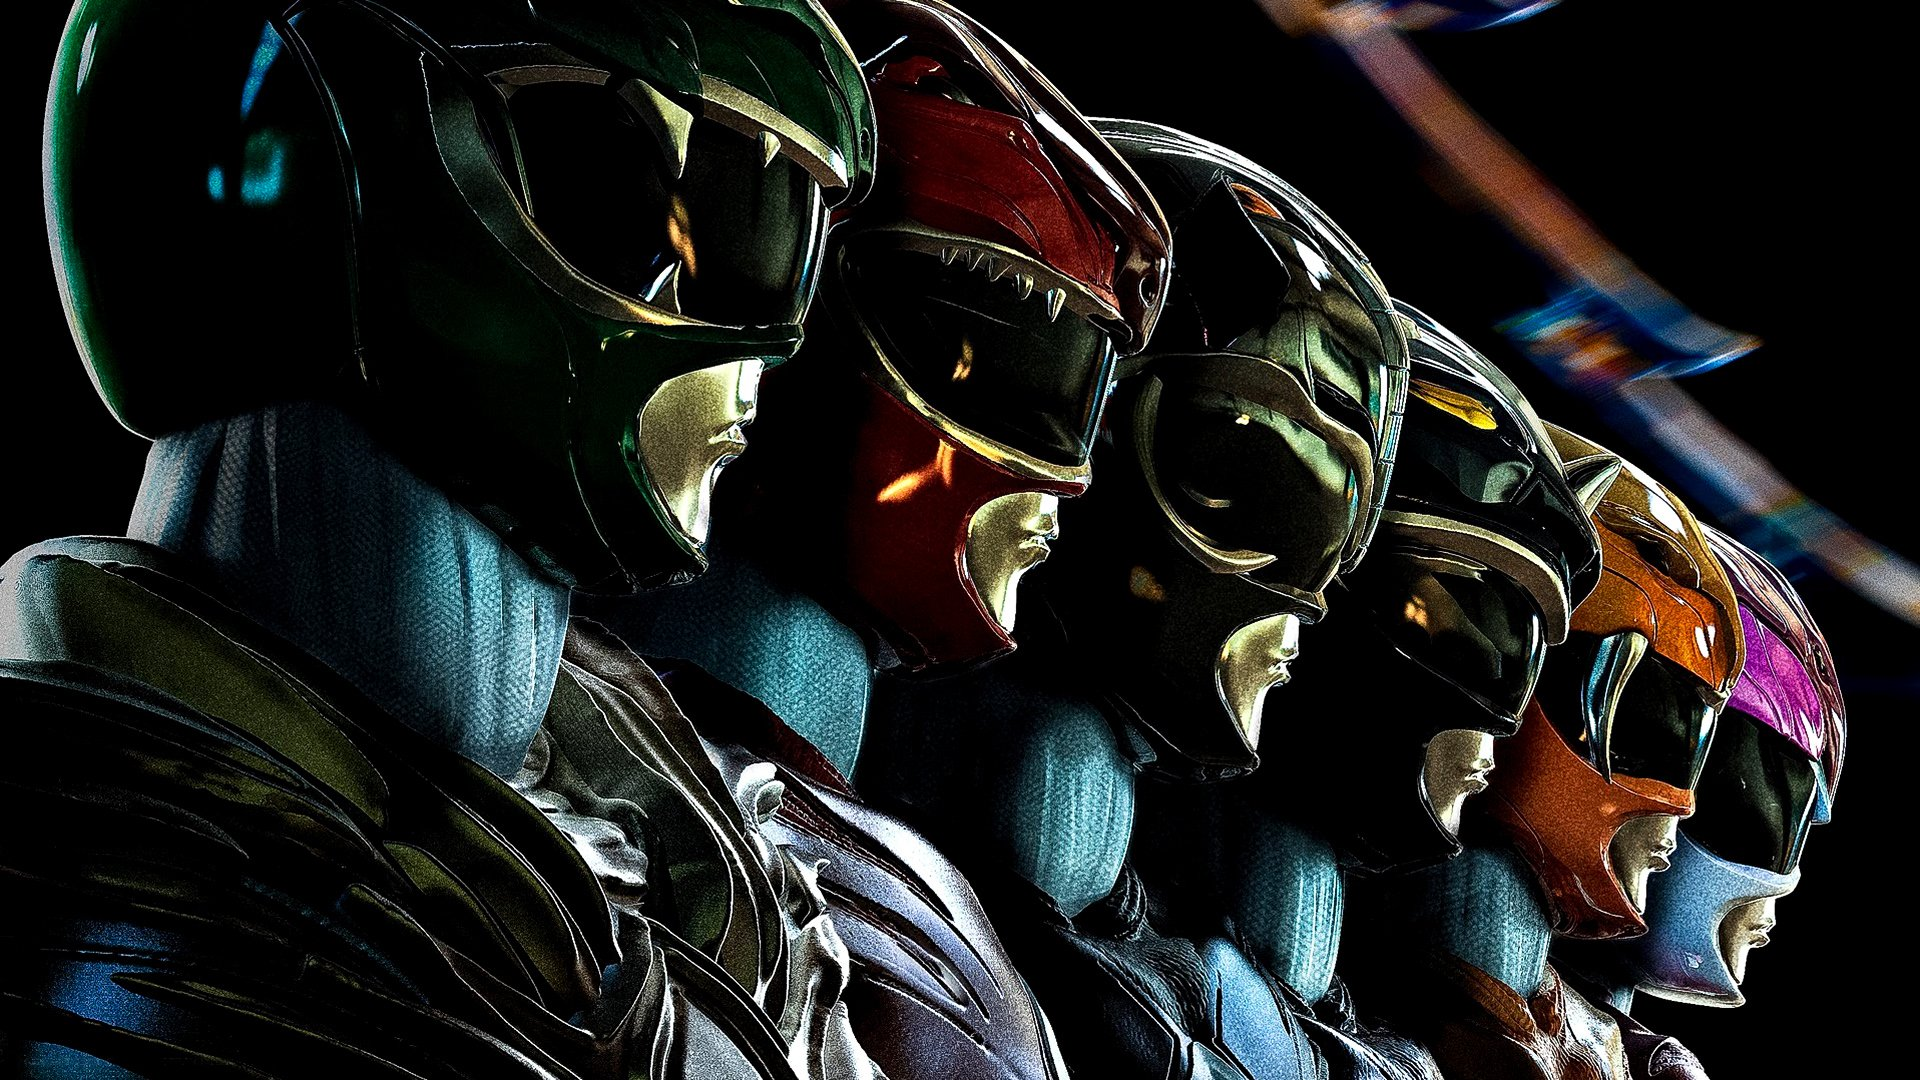 50 Power Rangers 2017 HD Wallpapers Background Images 1920x1080